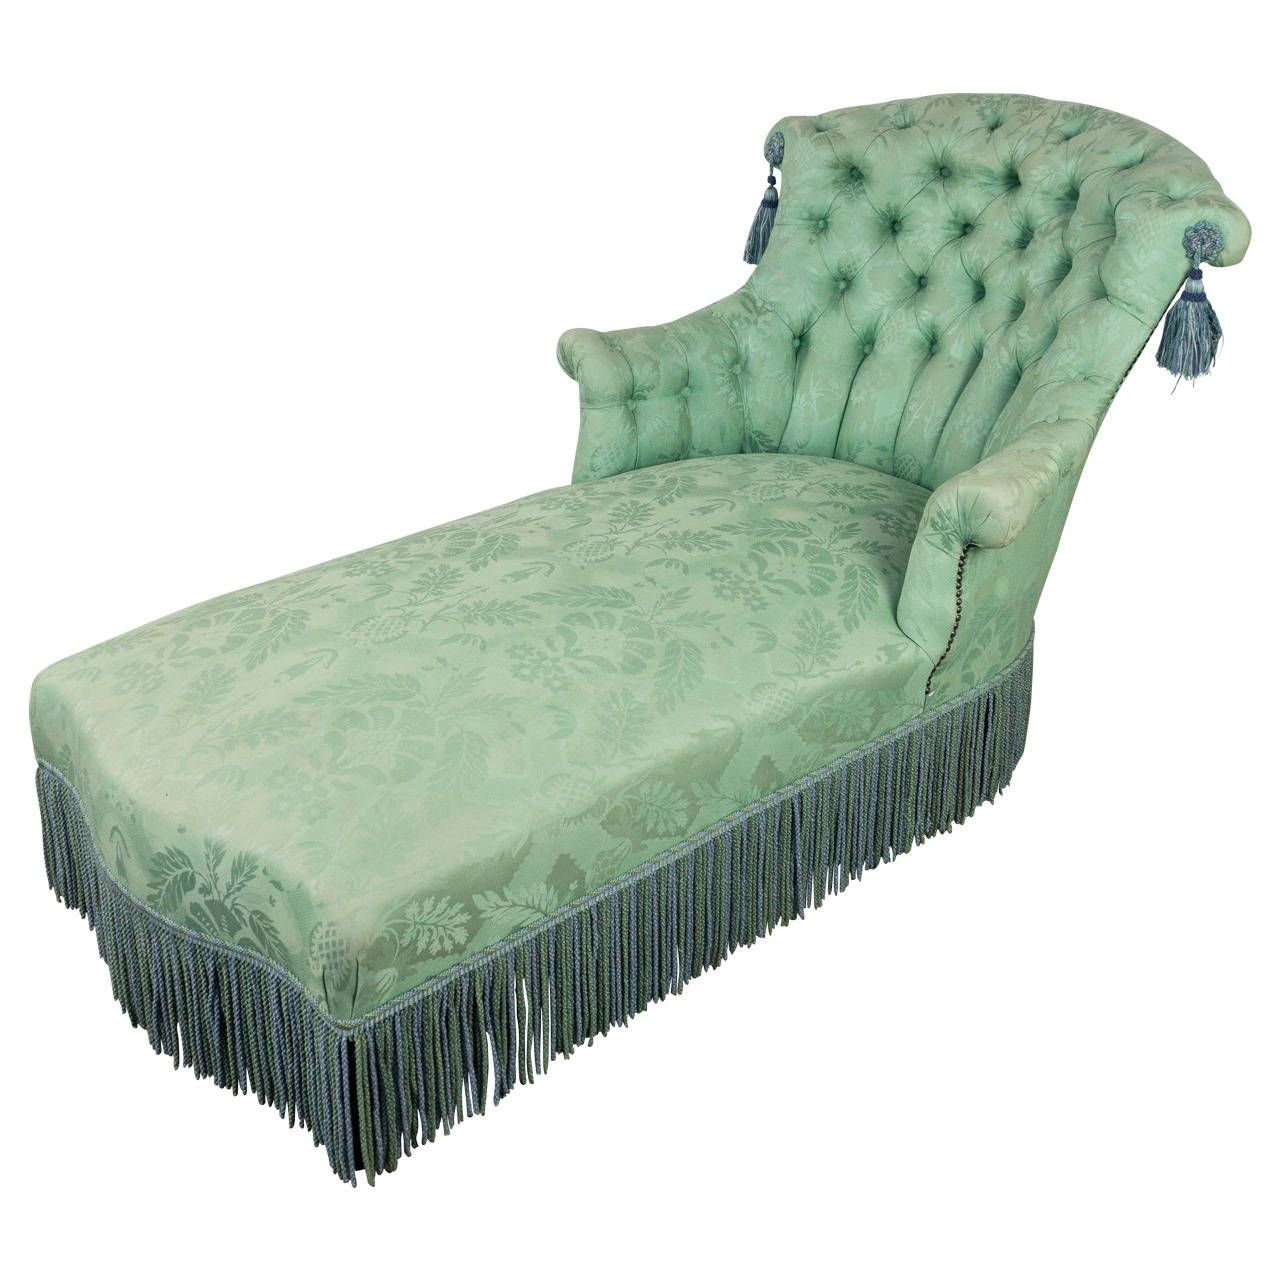 Photo of Chaise Longue in Pale Green Damask